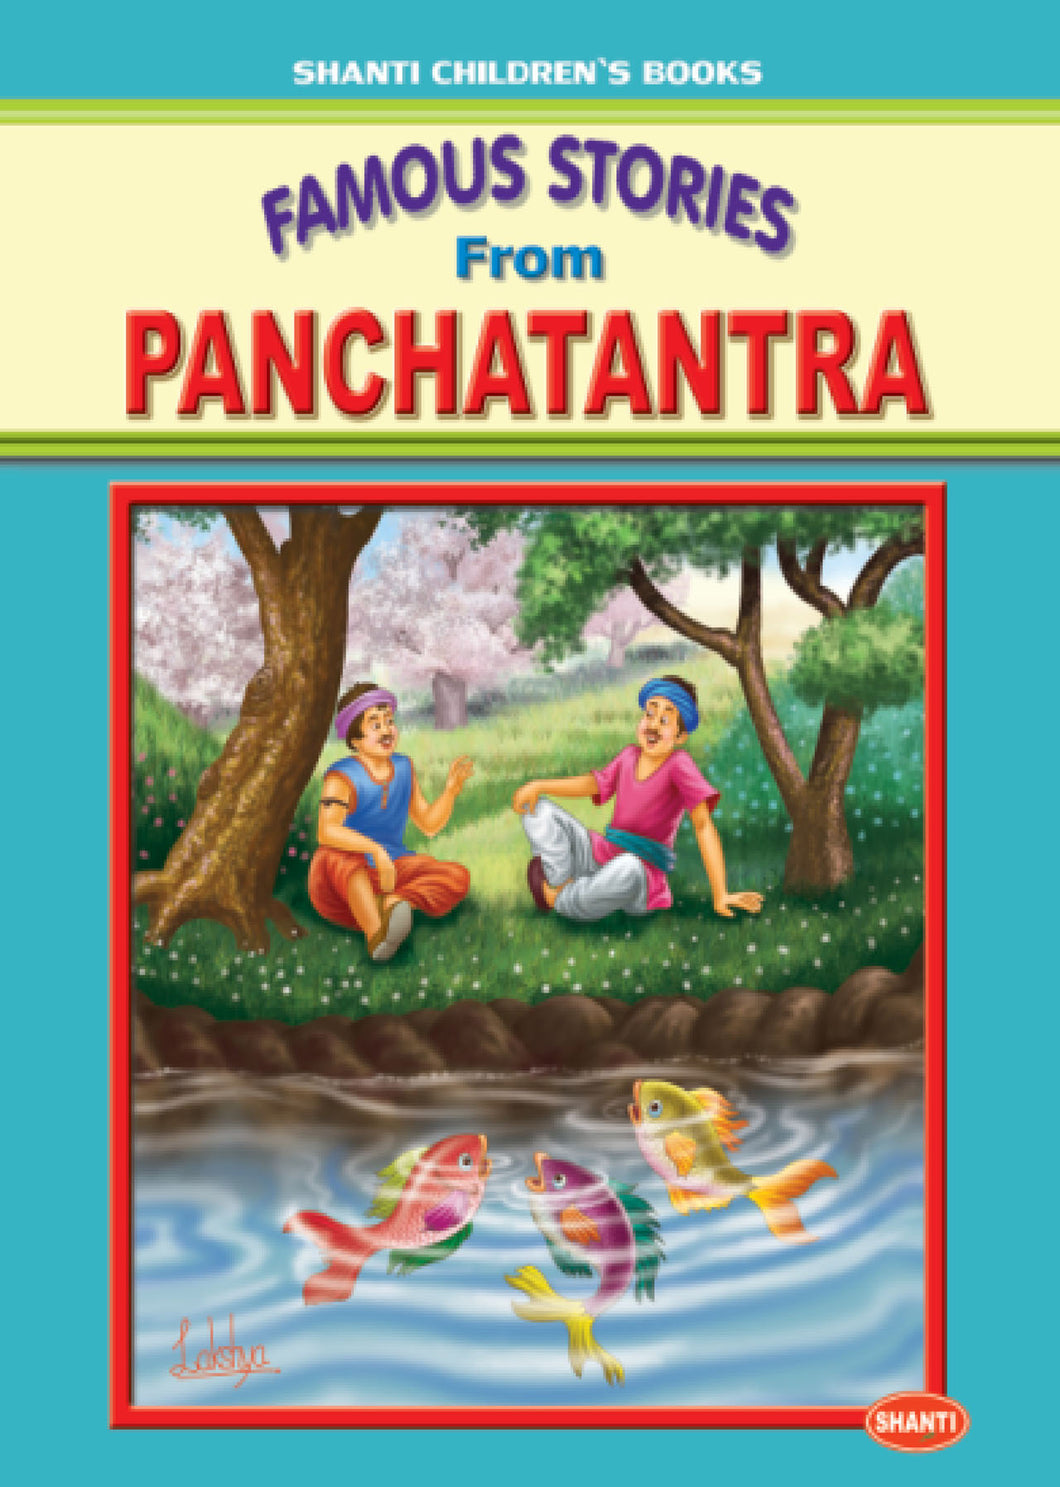 Panchatantra story books-Famous Stories of Panchtantra (English) - 2